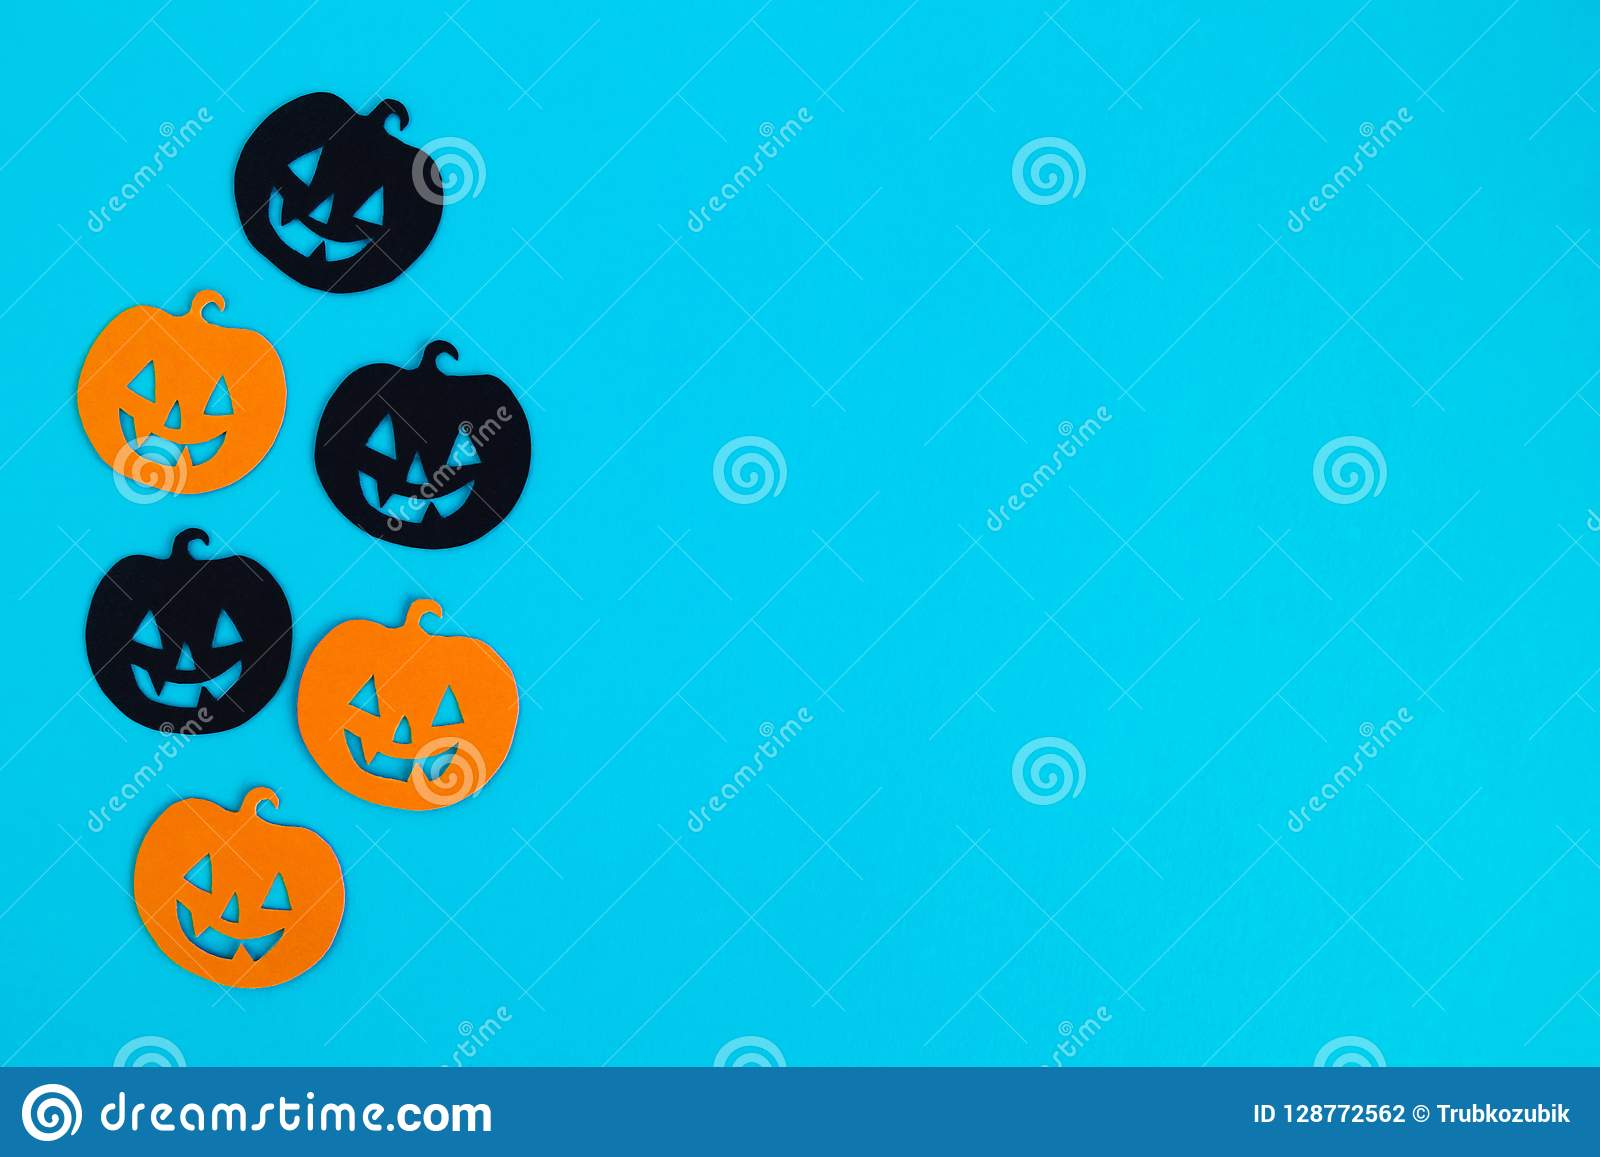 Holiday Decorations For Halloween Orange And Black Paper Pumpkins